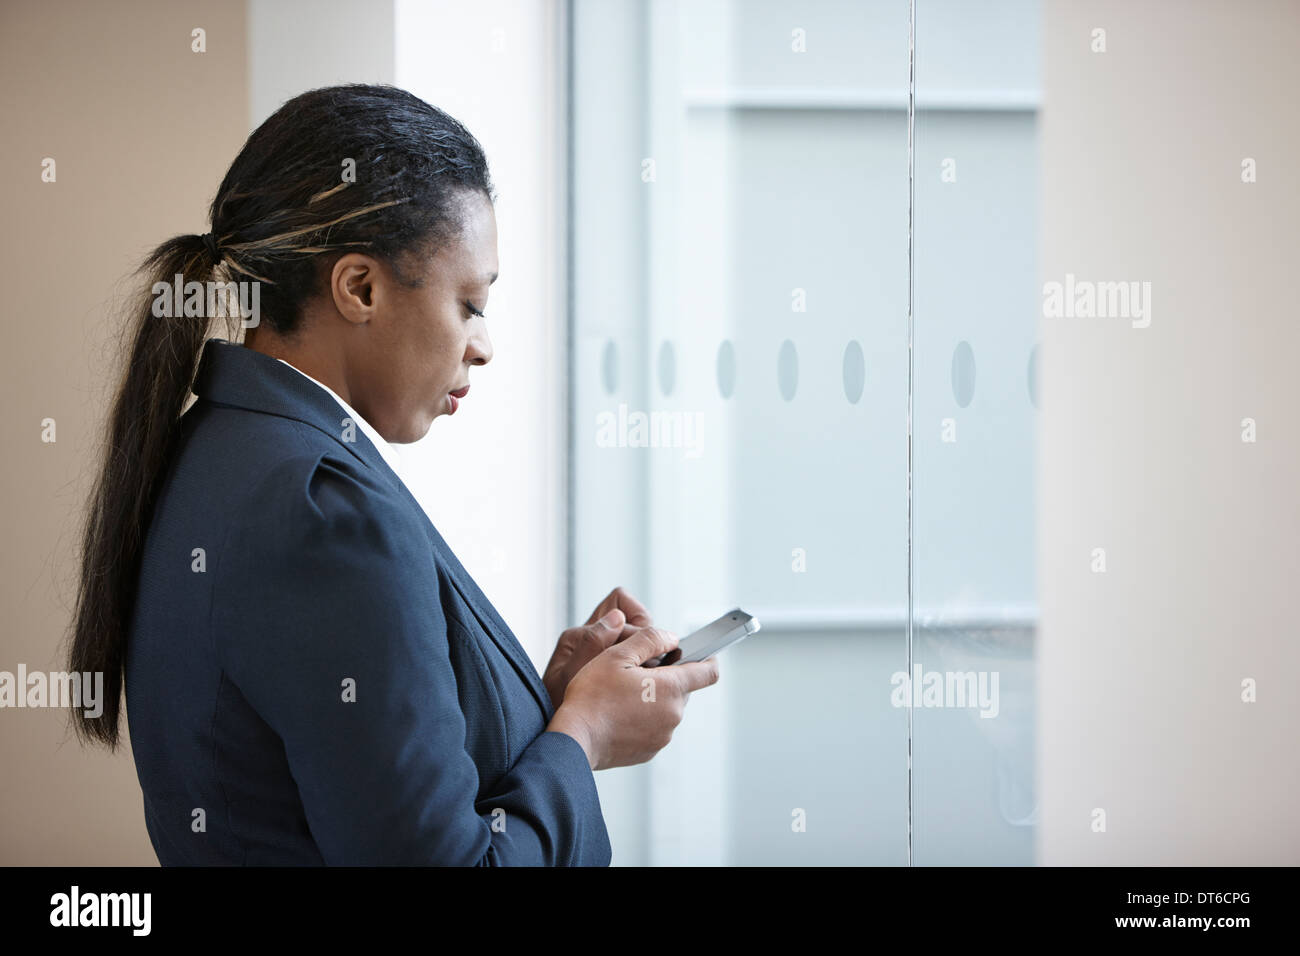 Businesswoman using cell phone - Stock Image